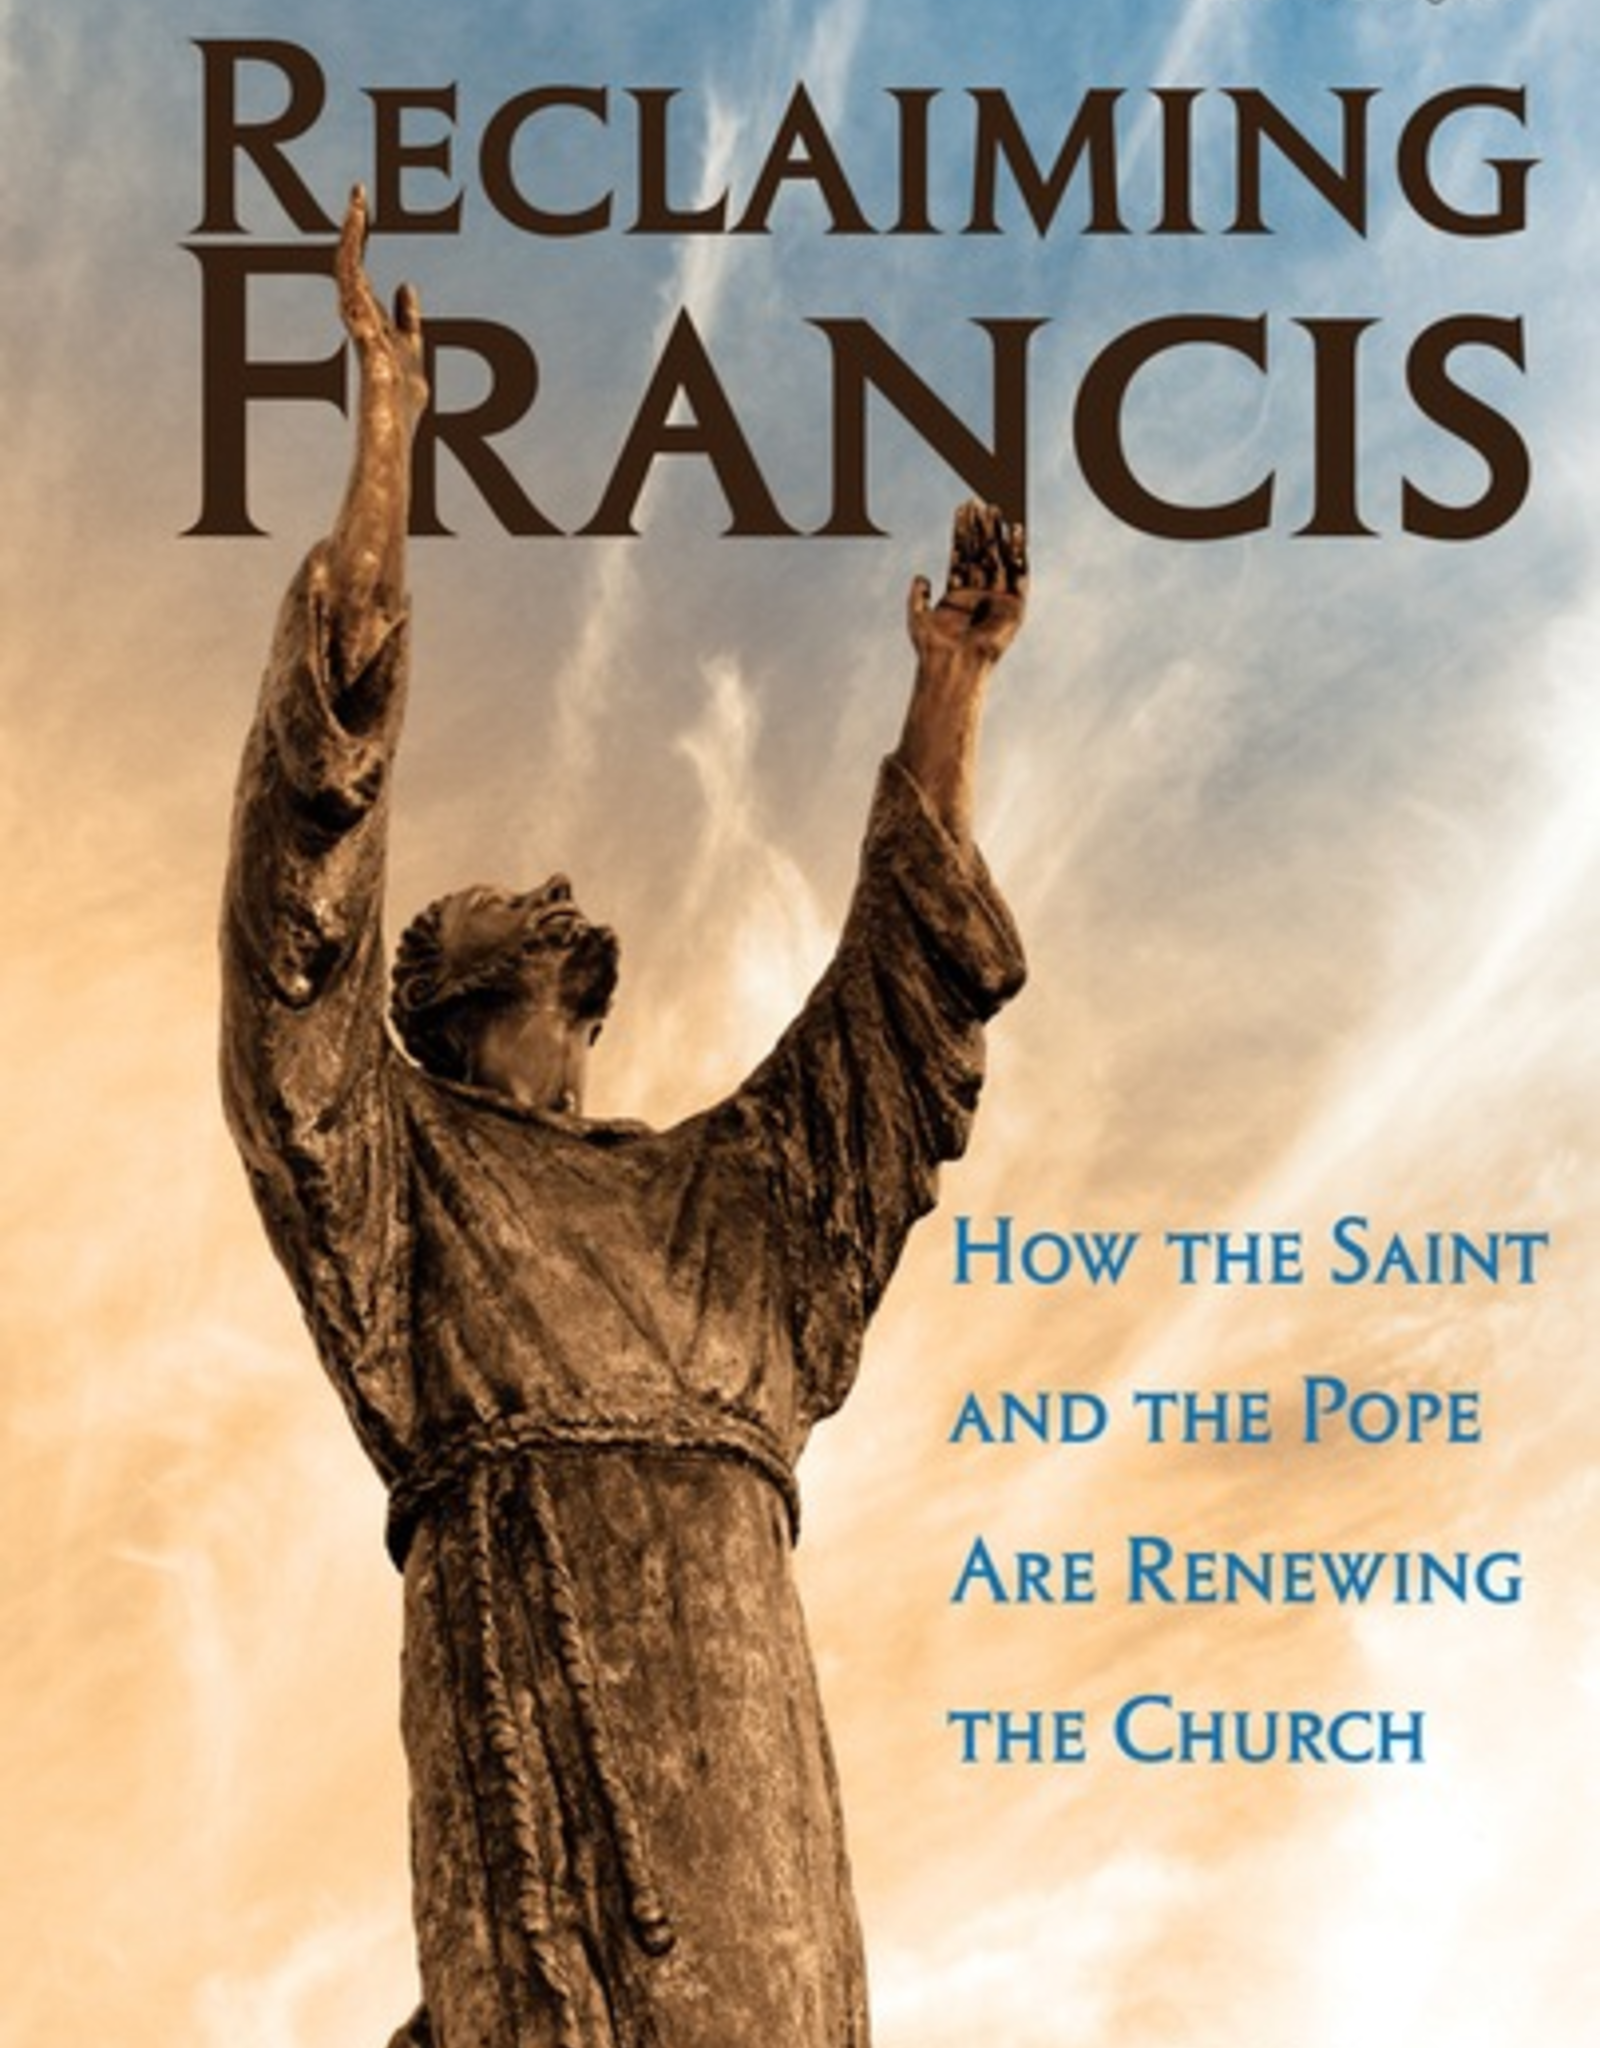 Ave Maria Press Reclaiming Francis:  How the Saint and the Pope Are Renewing the Church, by Charles M. Murphy (paperback)